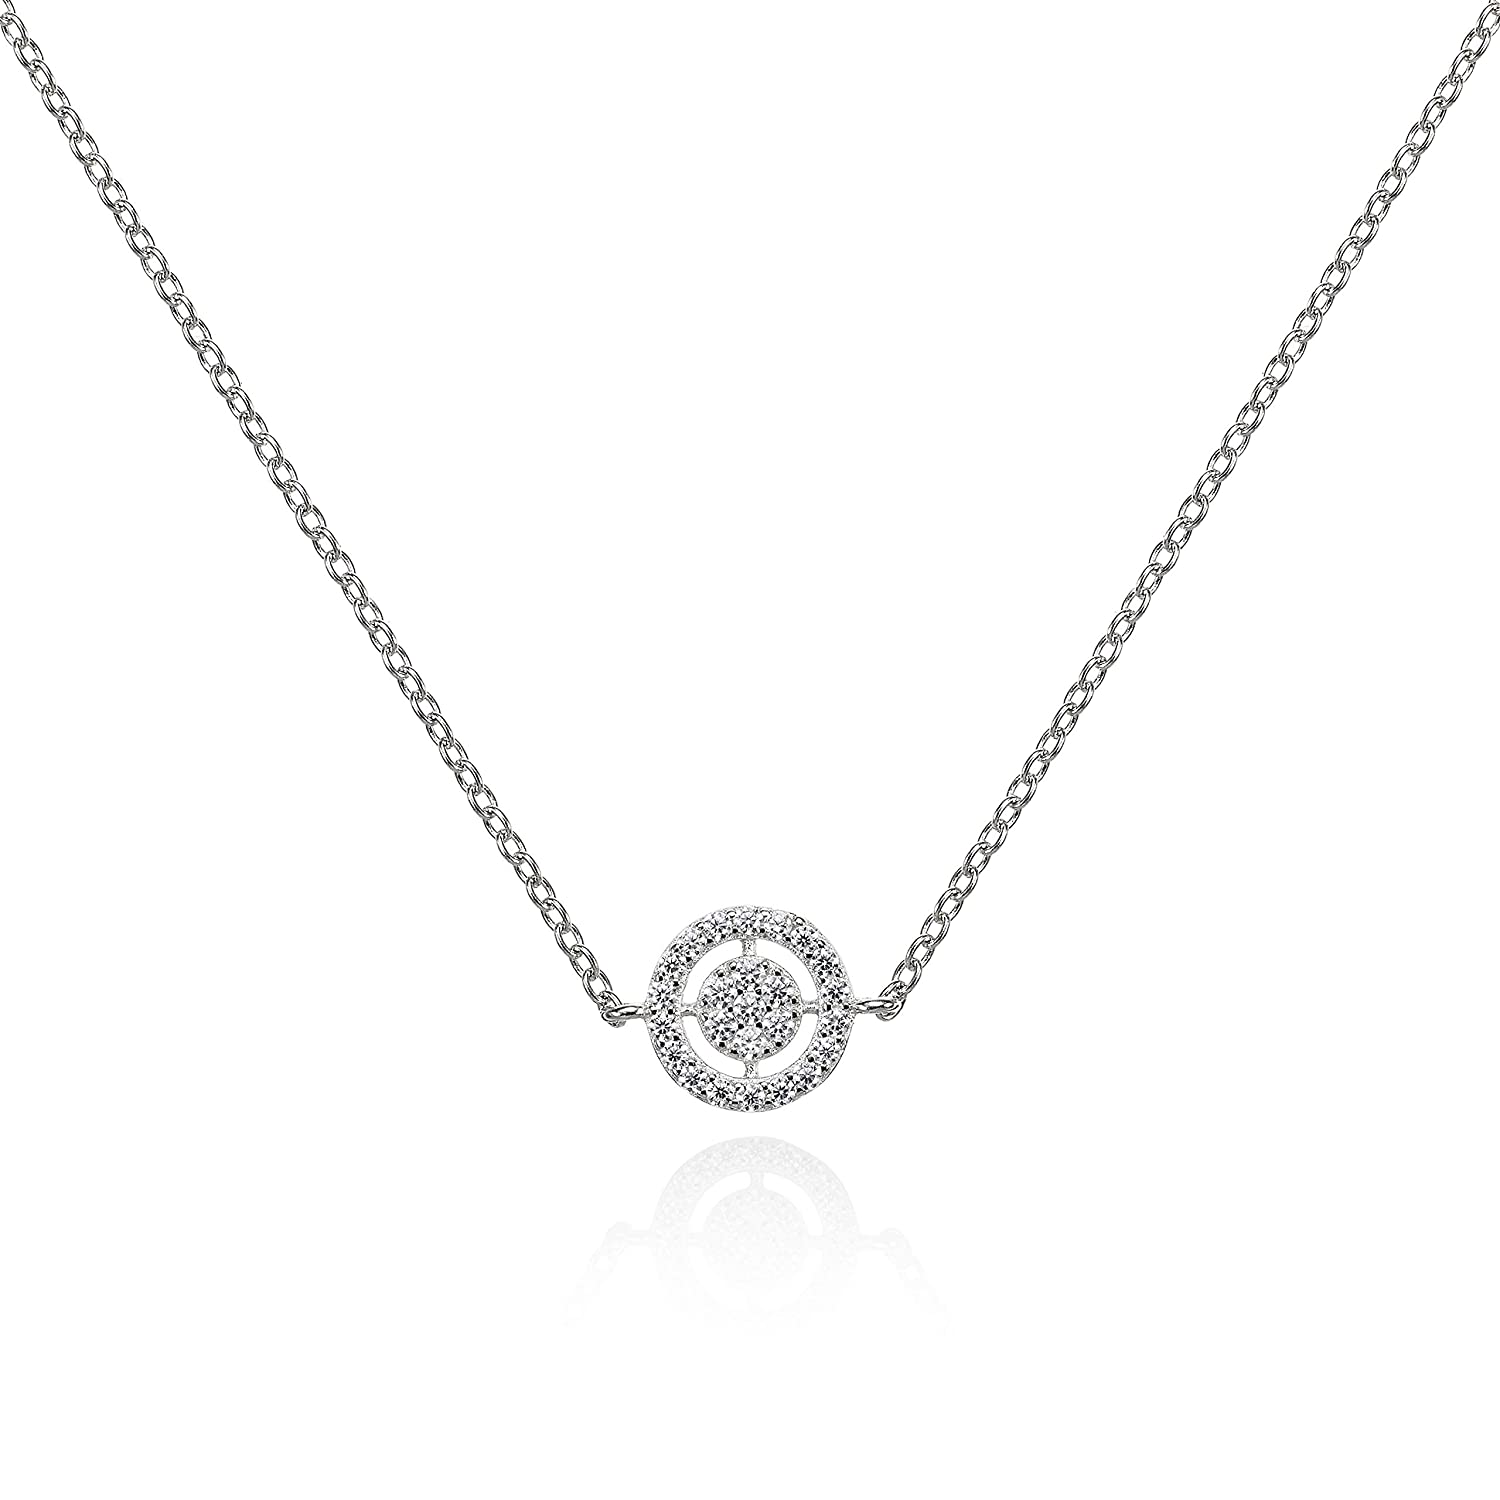 Namana Sterling Silver Target Pendant Necklace Fine Silver Necklace For Women Set With Aaa Cubic Zirconia Stones Dainty Pendant Necklace With A Gift